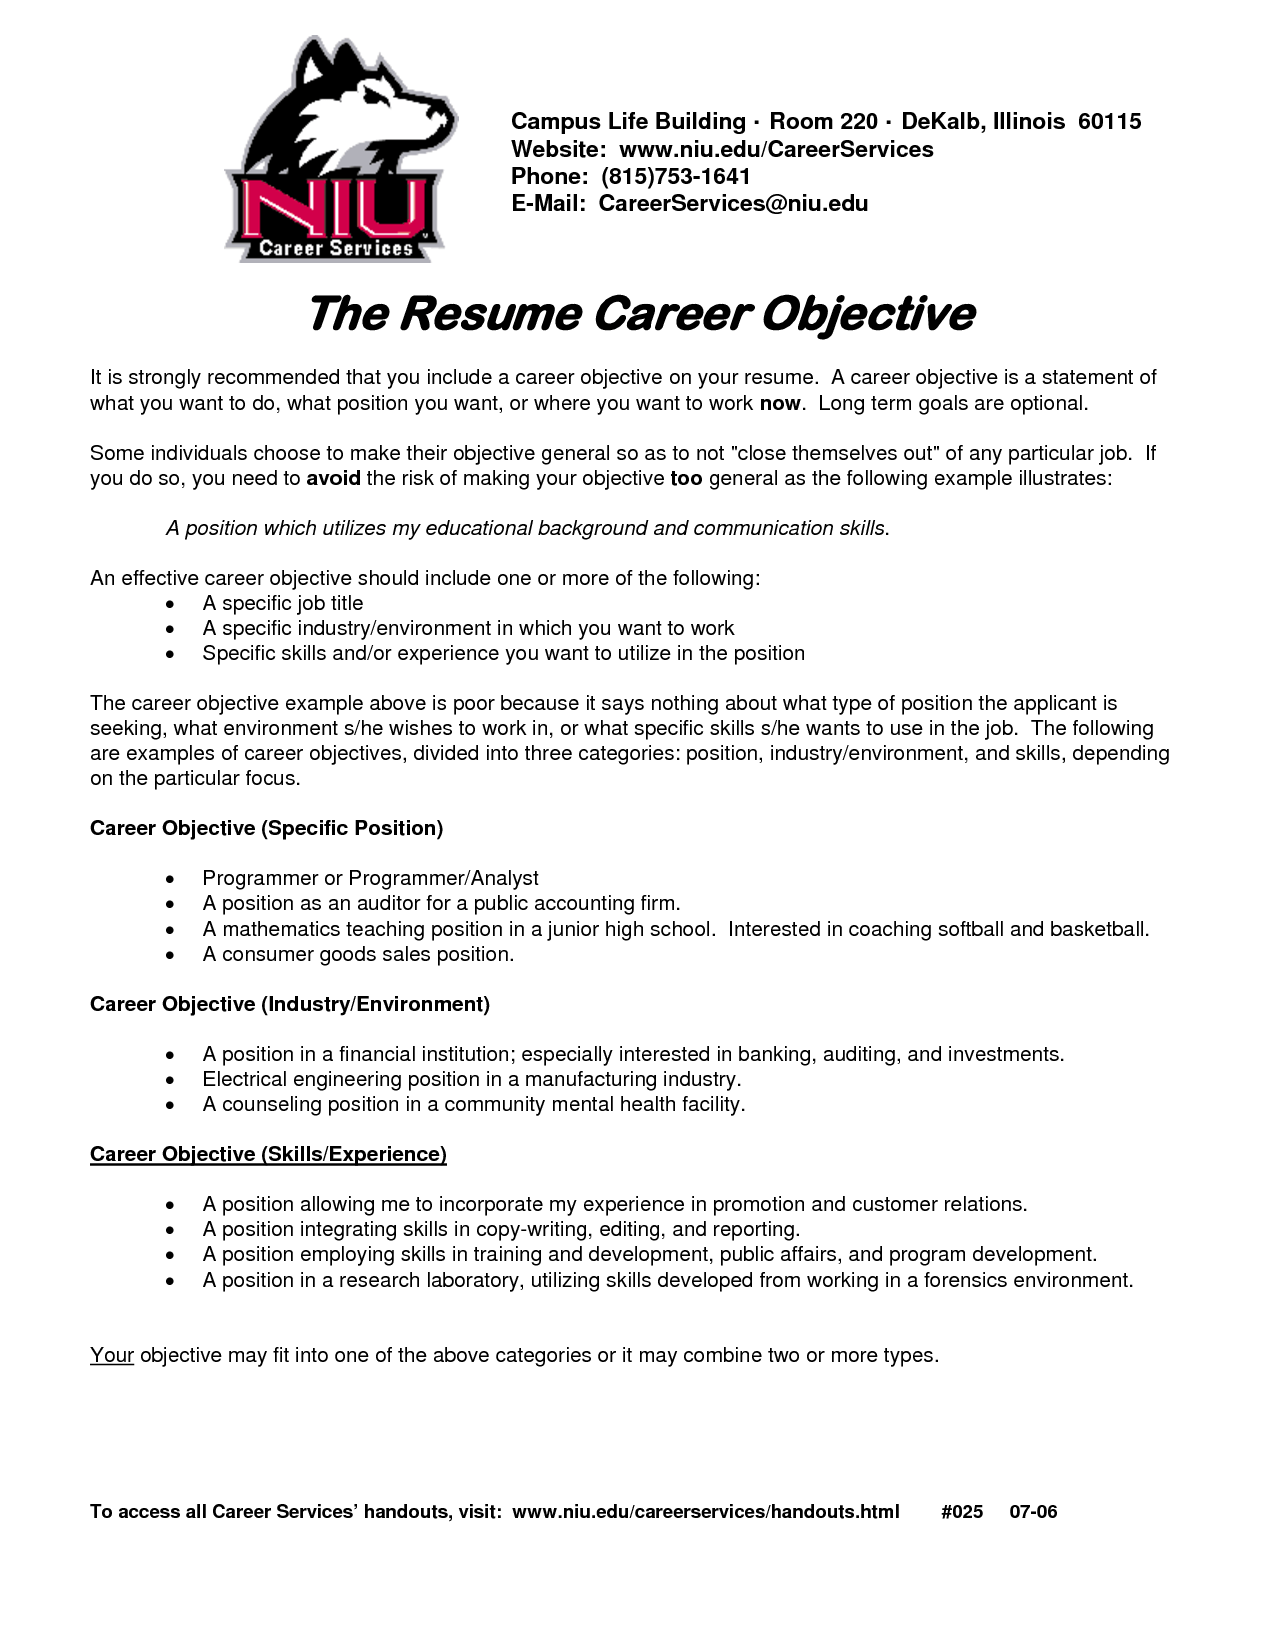 Objective Resume Internship 2016 Resume Objective Example Samplebusinessresume